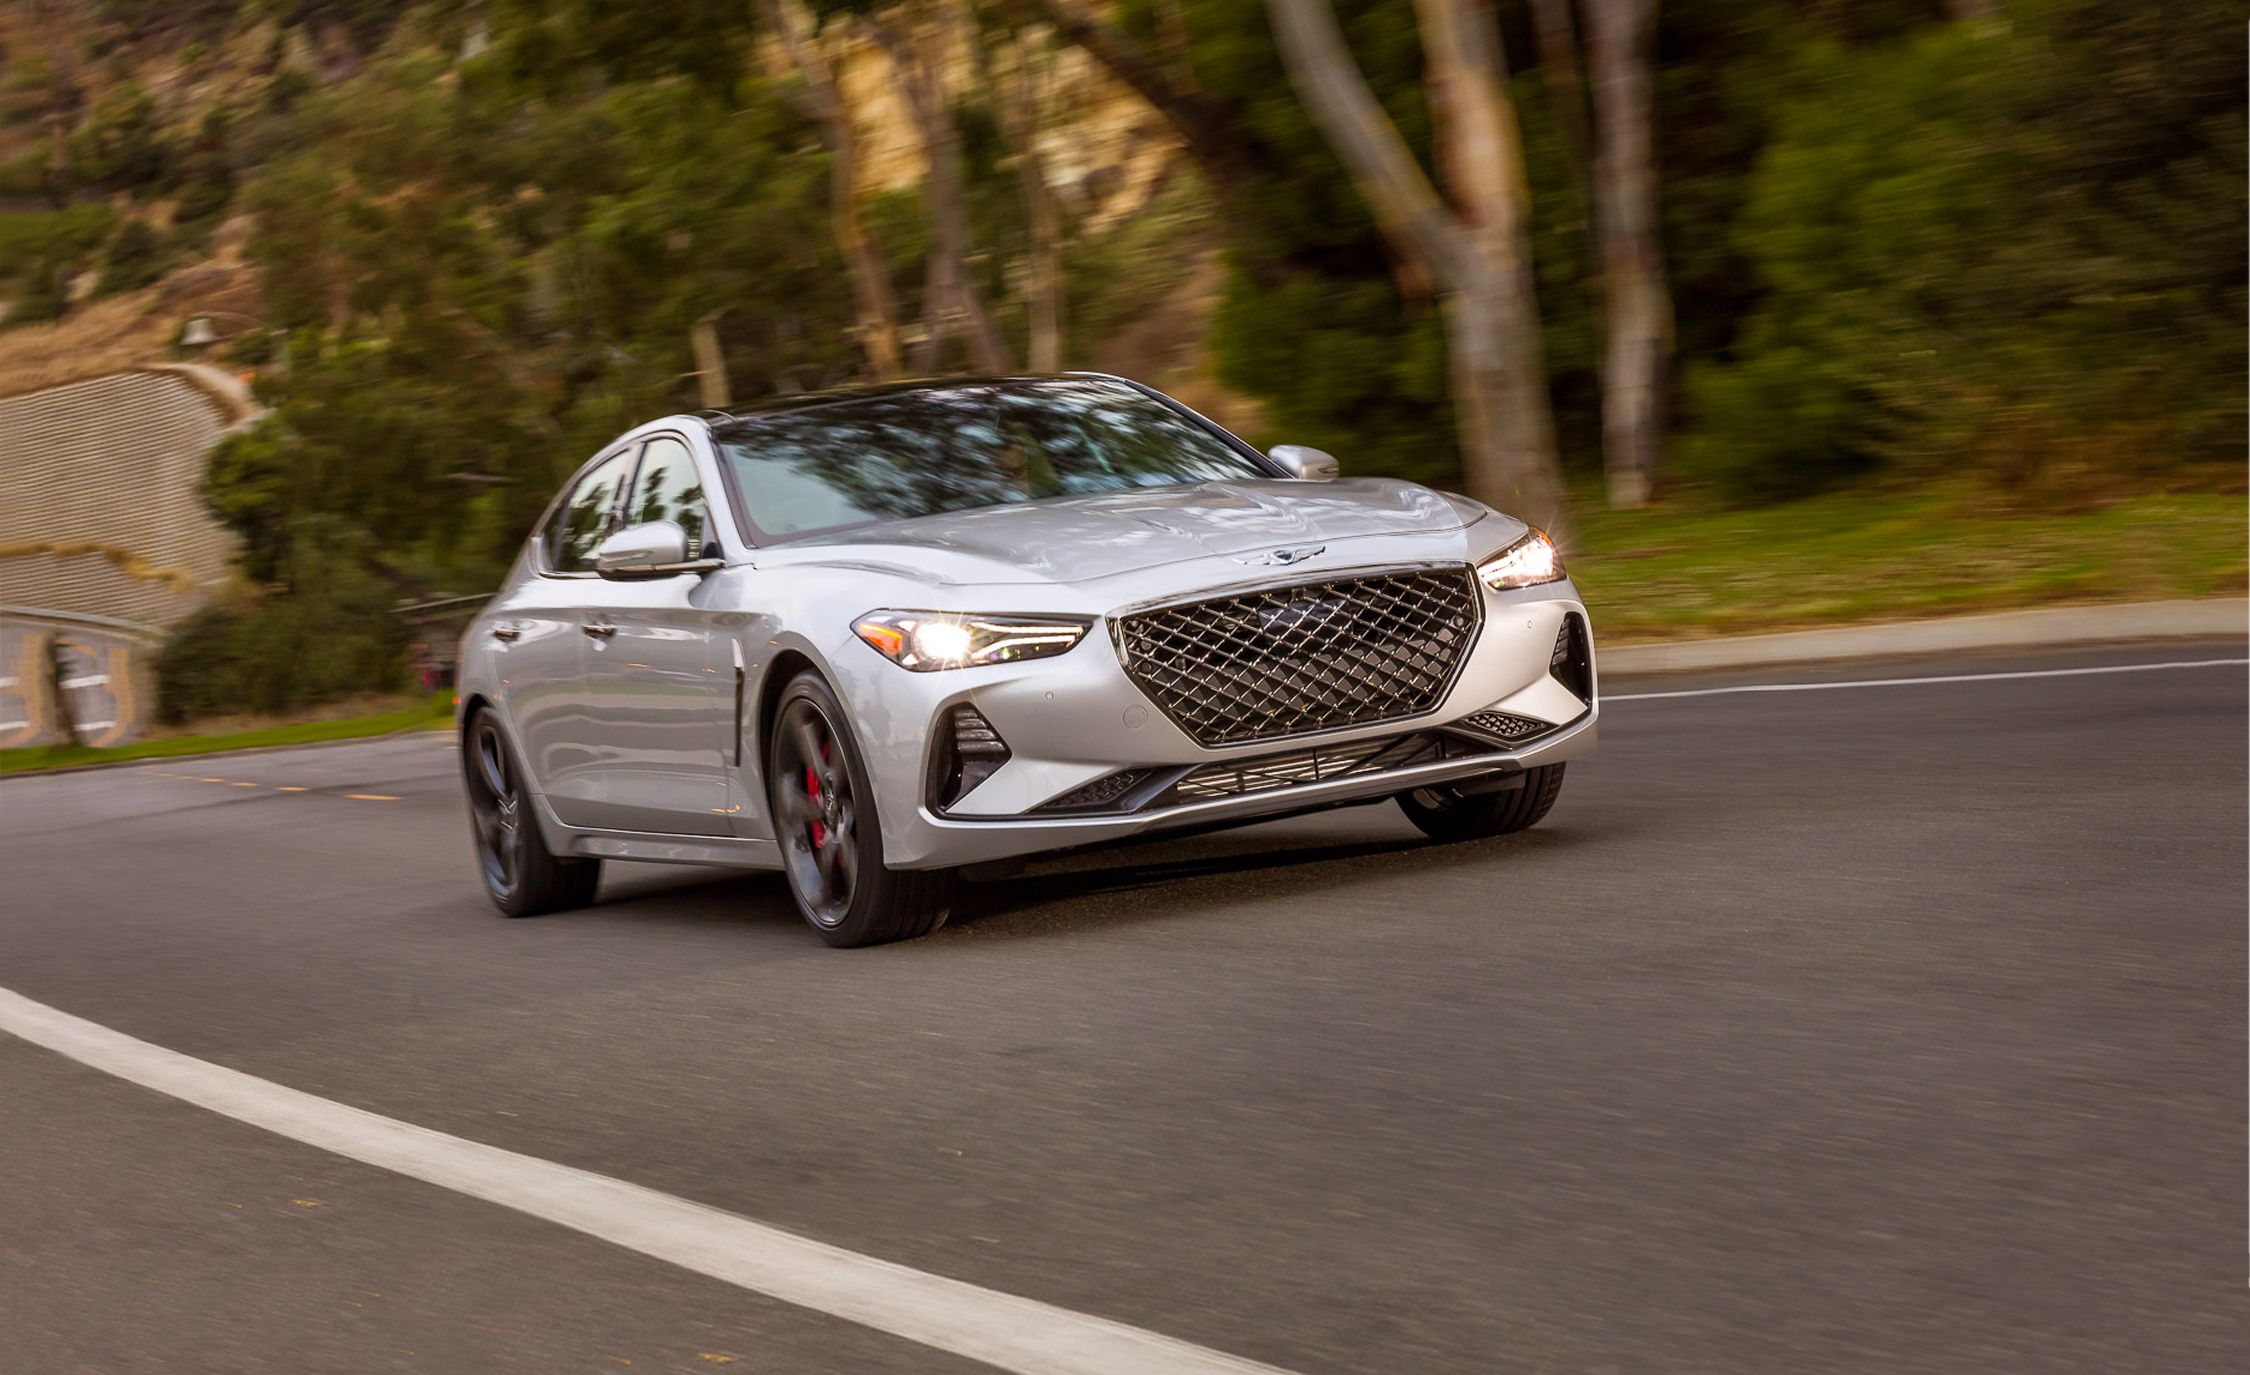 2019 genesis g70 official photos and info news car and driver rh caranddriver com rear wheel drive manual cars for sale list of rear wheel drive cars with manual transmissions